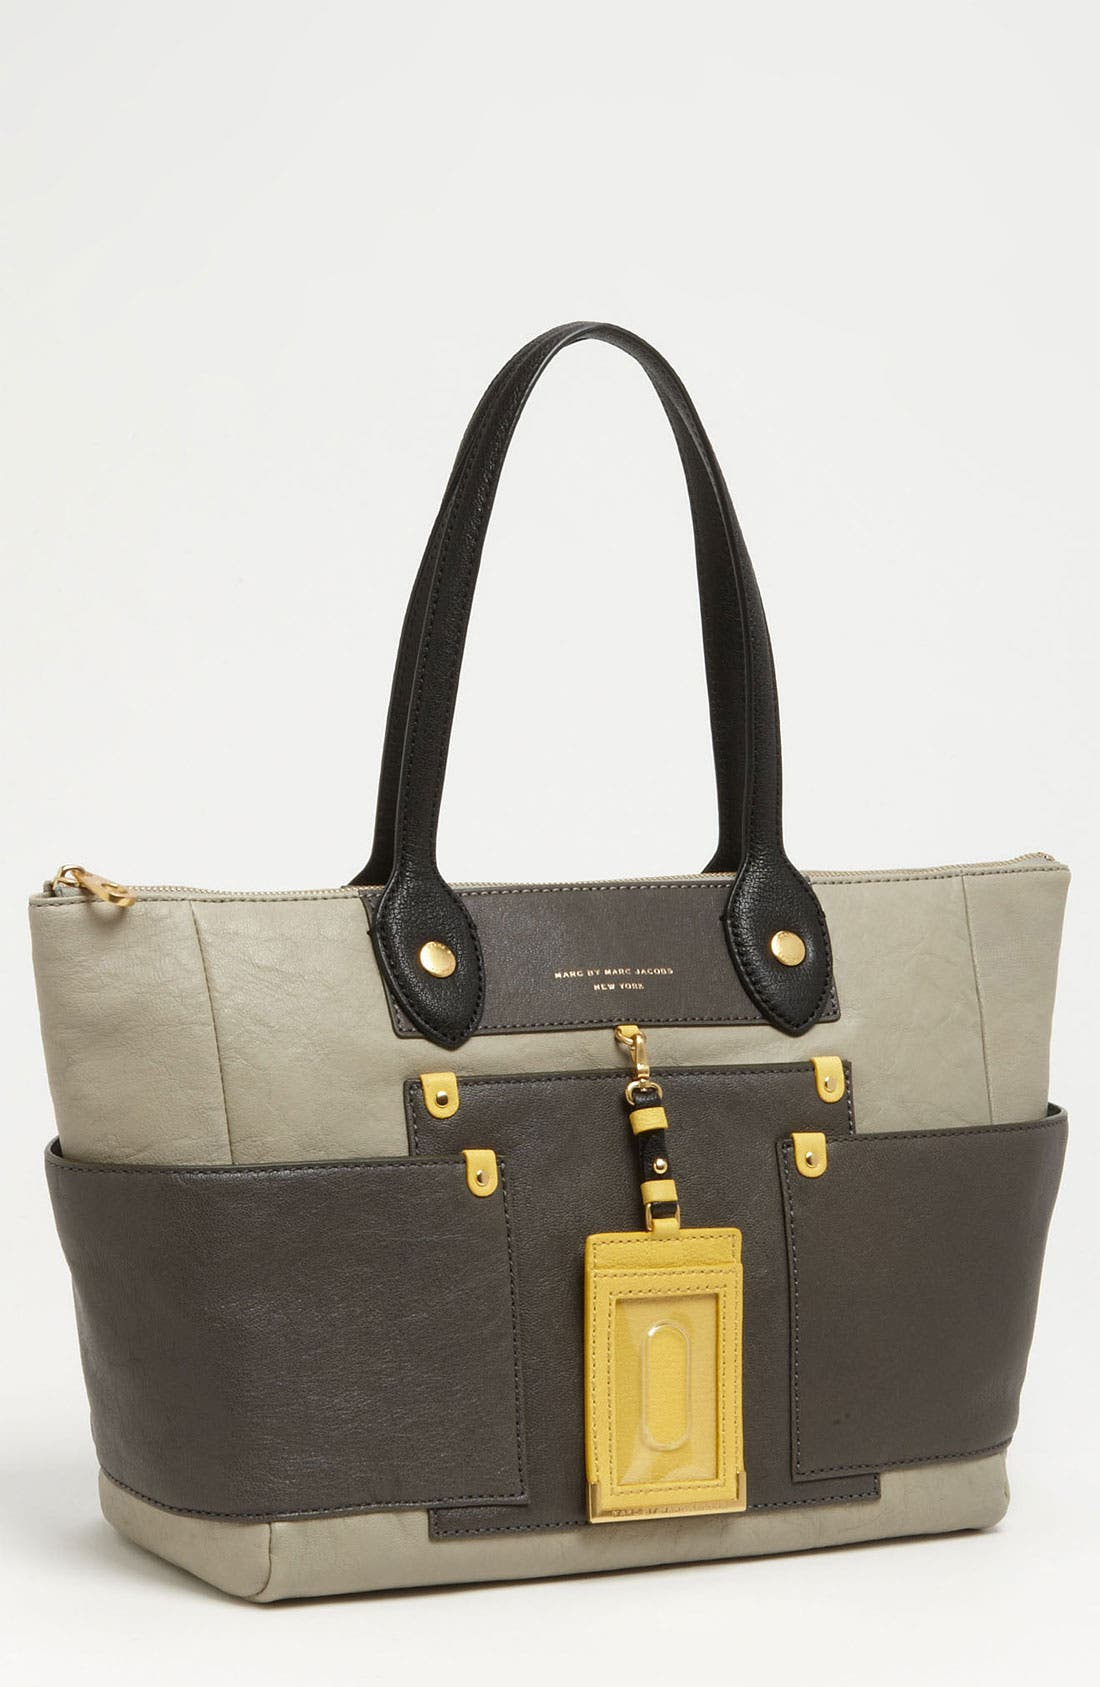 Main Image - MARC BY MARC JACOBS 'Preppy Colorblock' Leather Tote